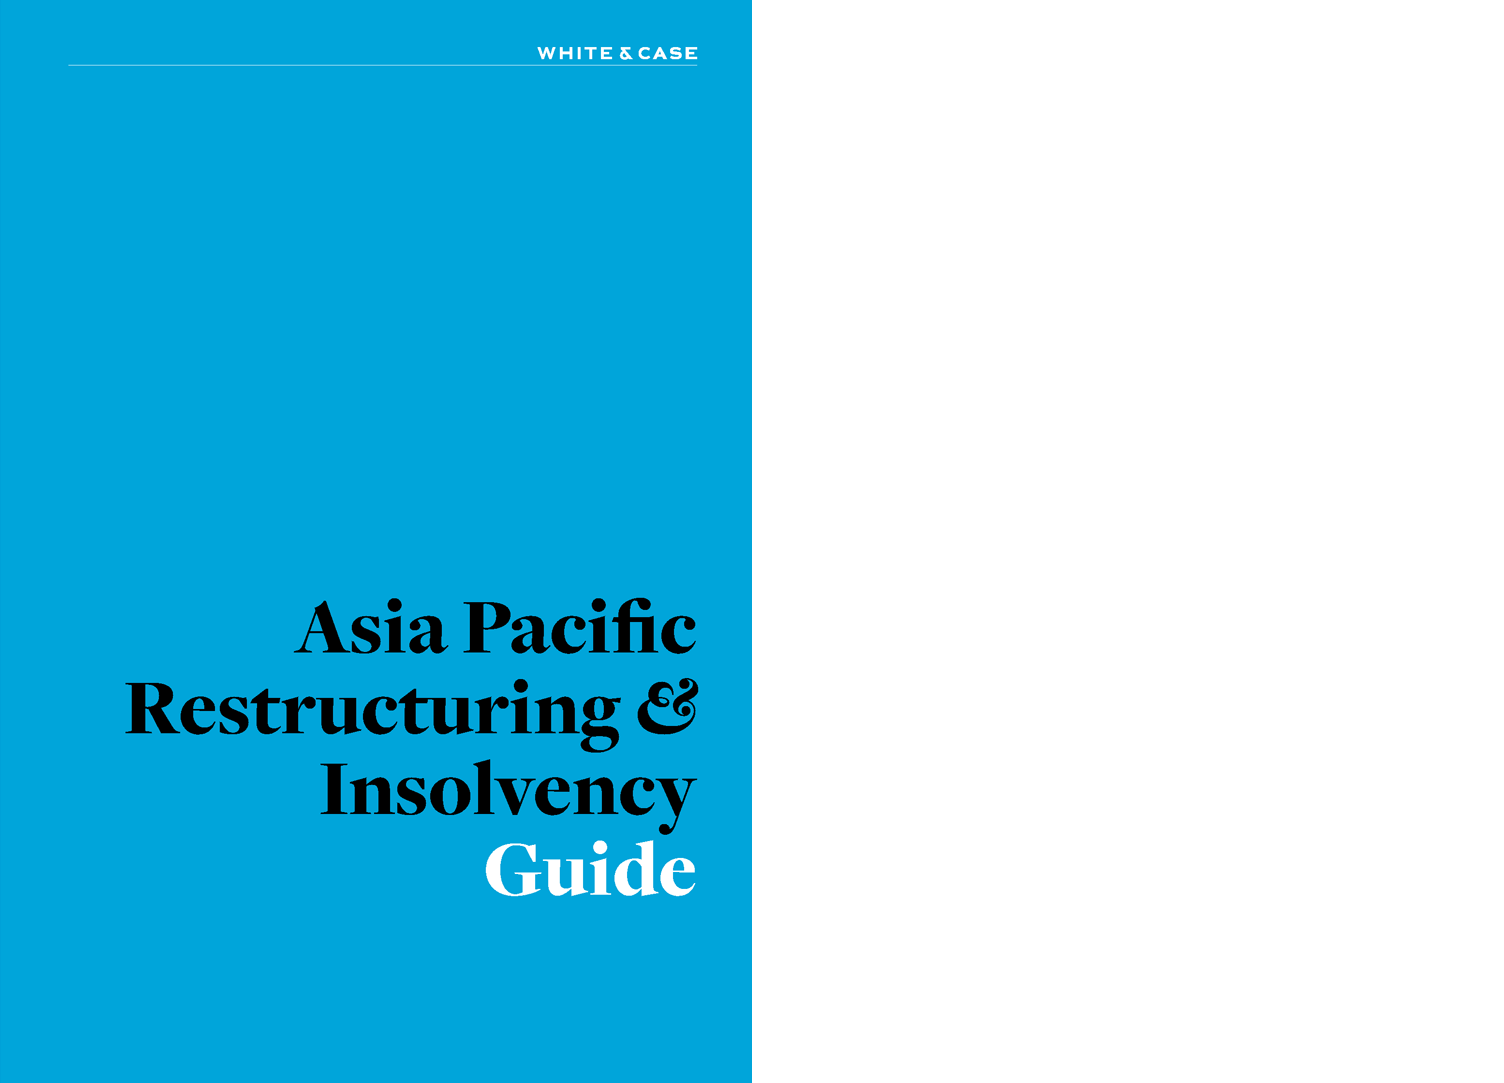 Asia Pacific Restructuring & Insolvency Guide